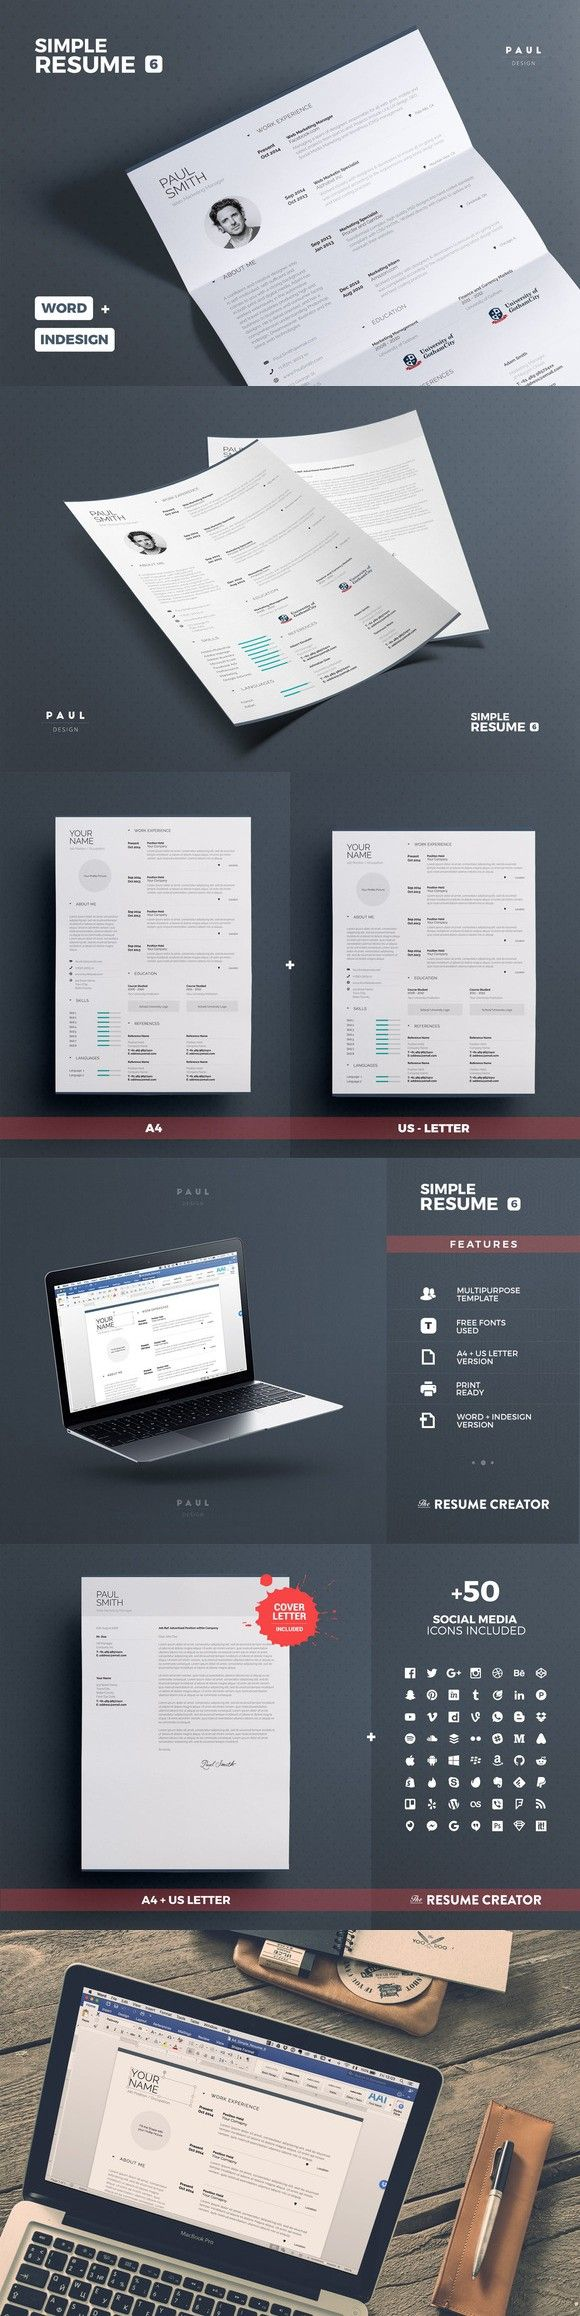 364 Best Resumes Images On Pinterest Resume Templates Resume